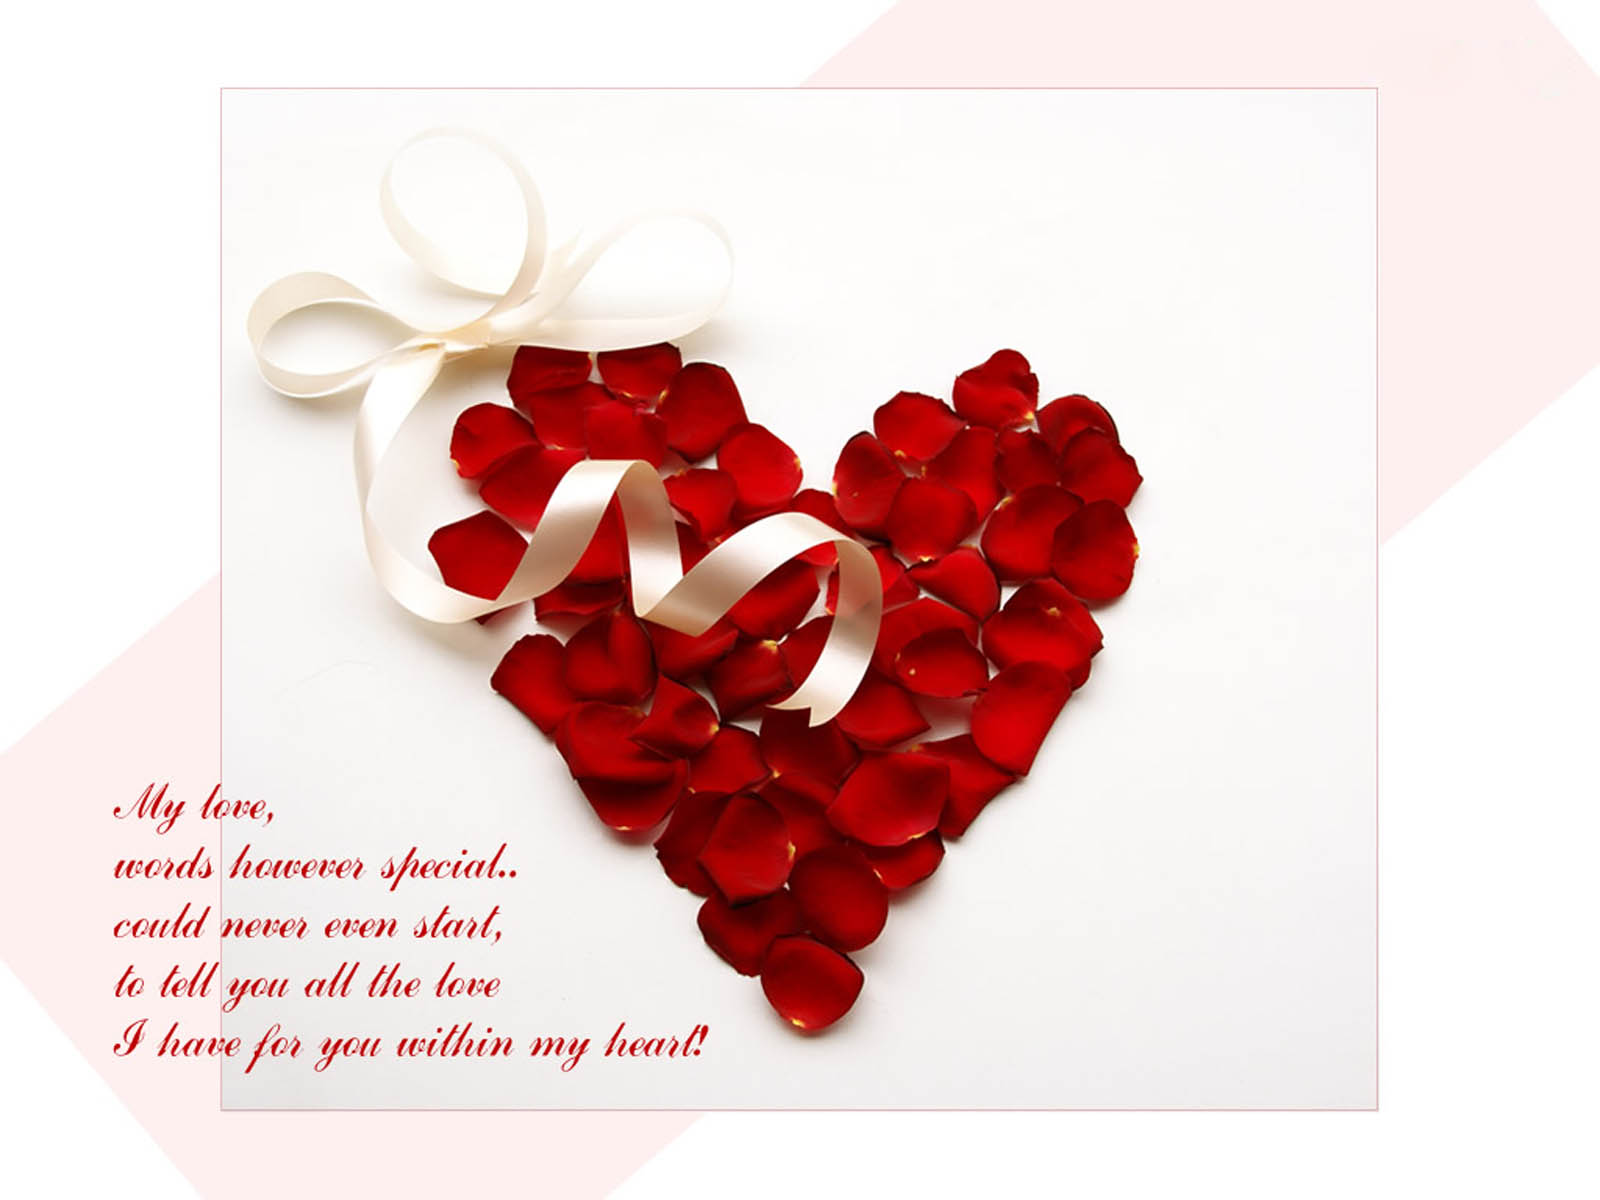 Love Quotes Wallpapers LoveQuotes Desktop Wallpapers Love Quotes 1600x1200